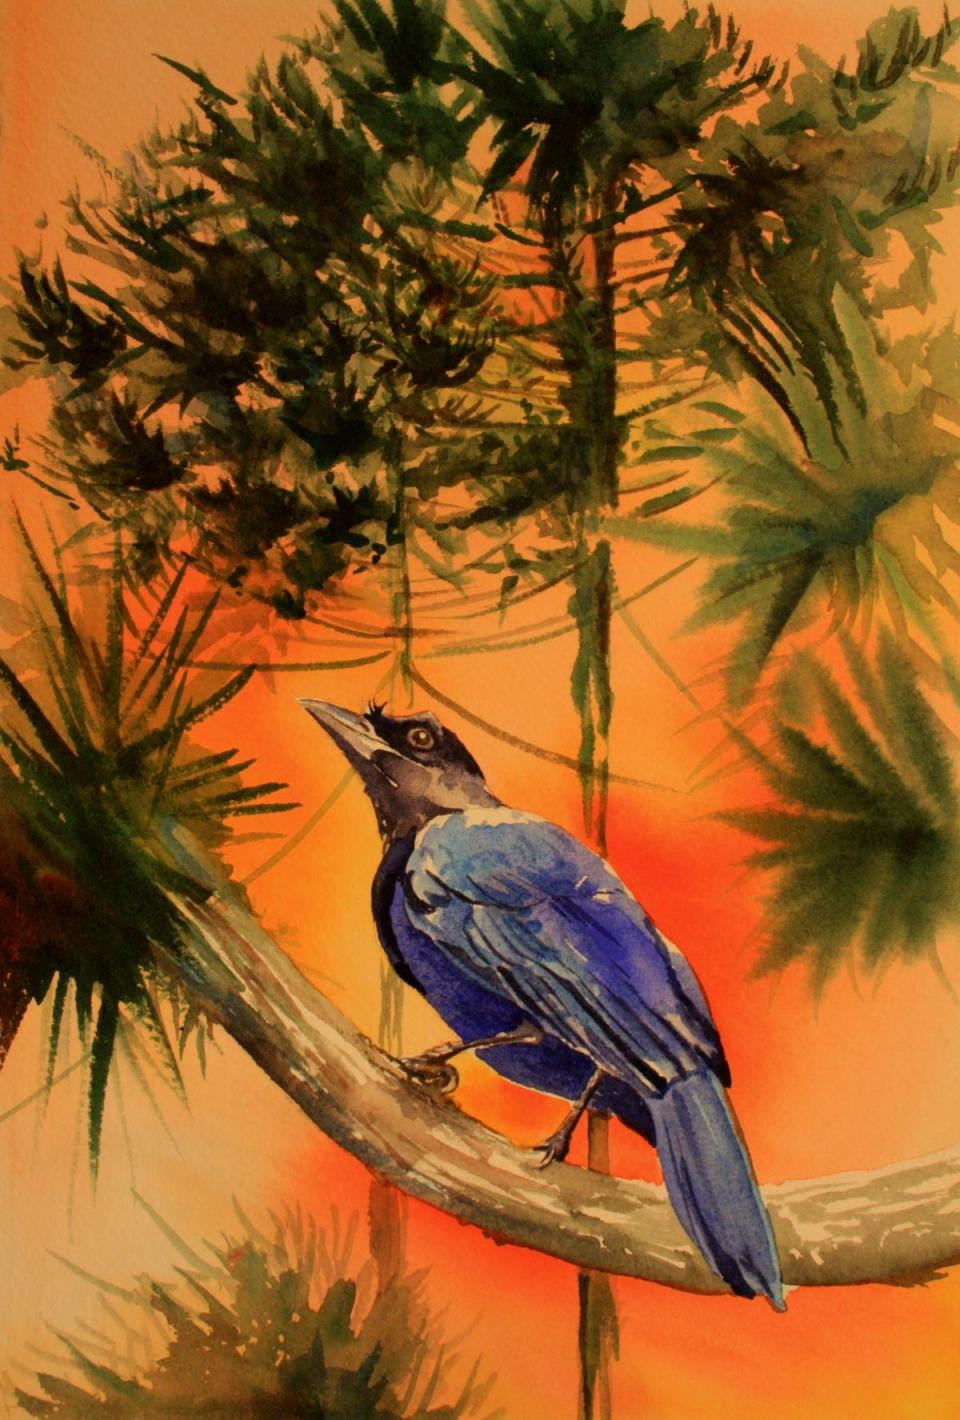 | Wallhanging by Kitty Harvill | Artists for Conservation